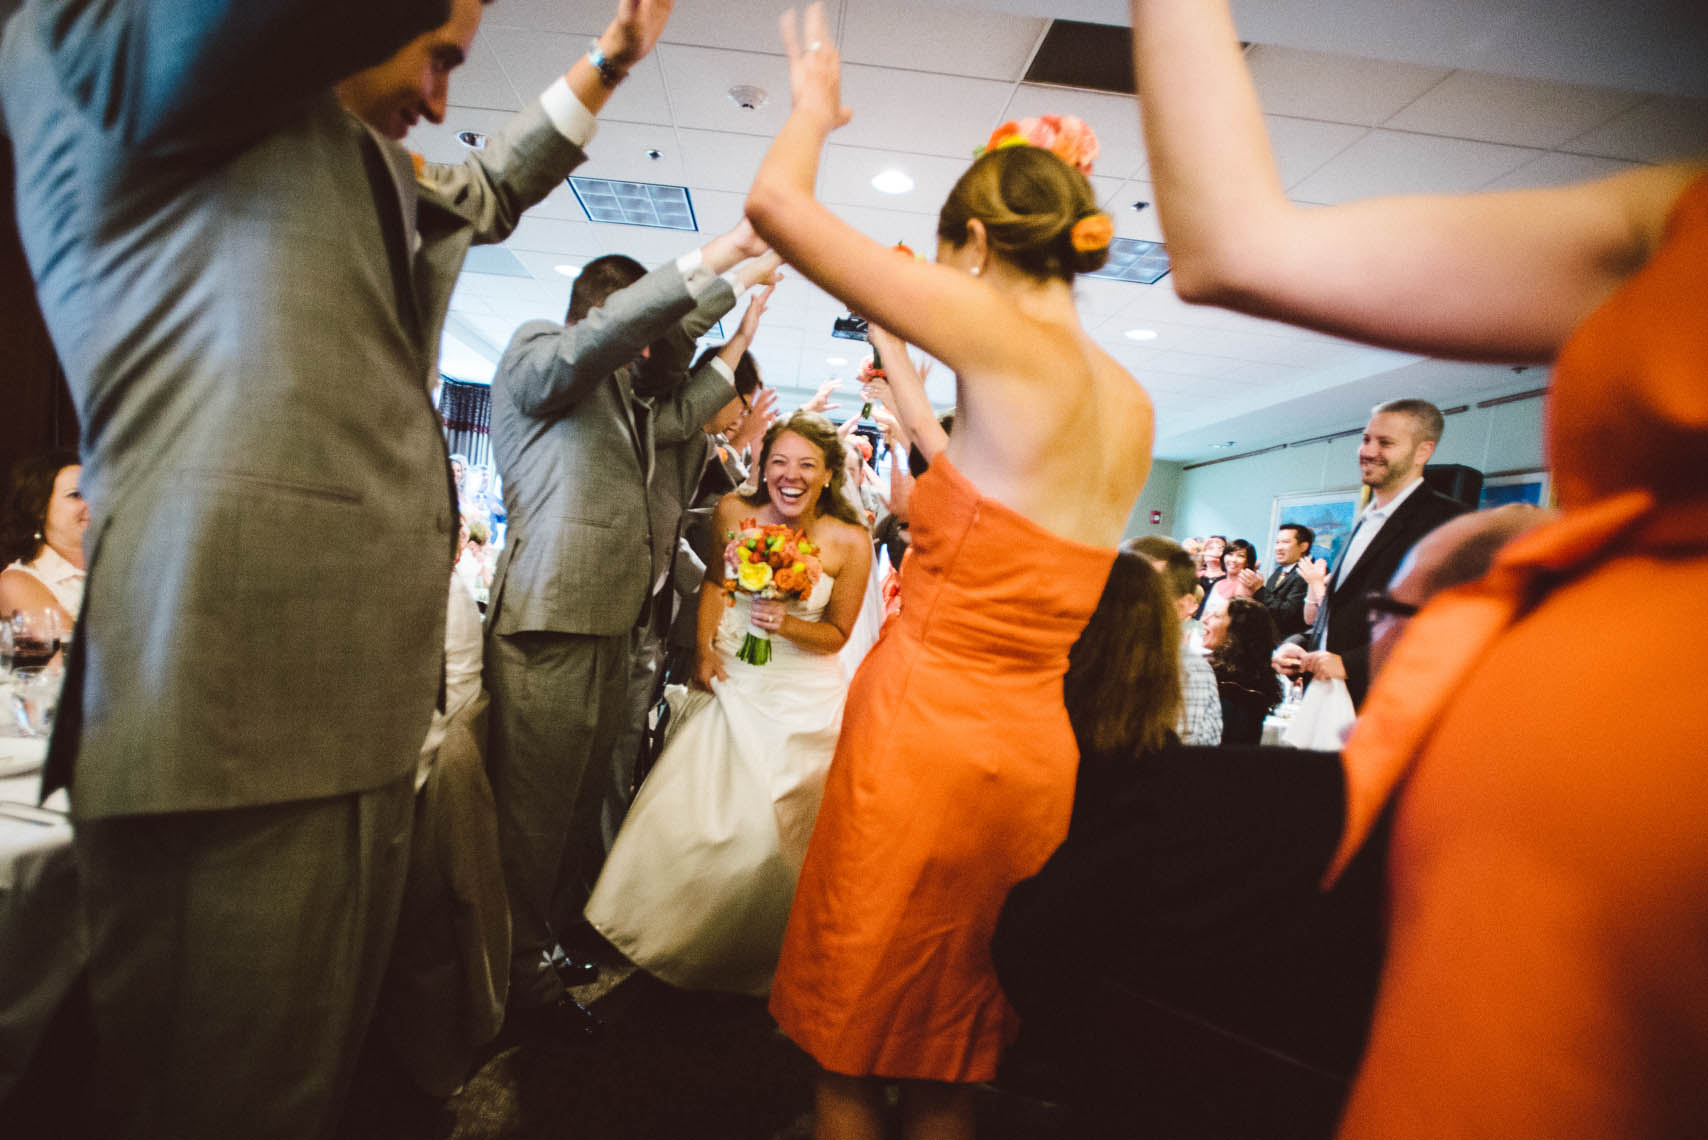 034_wedding-mix-2